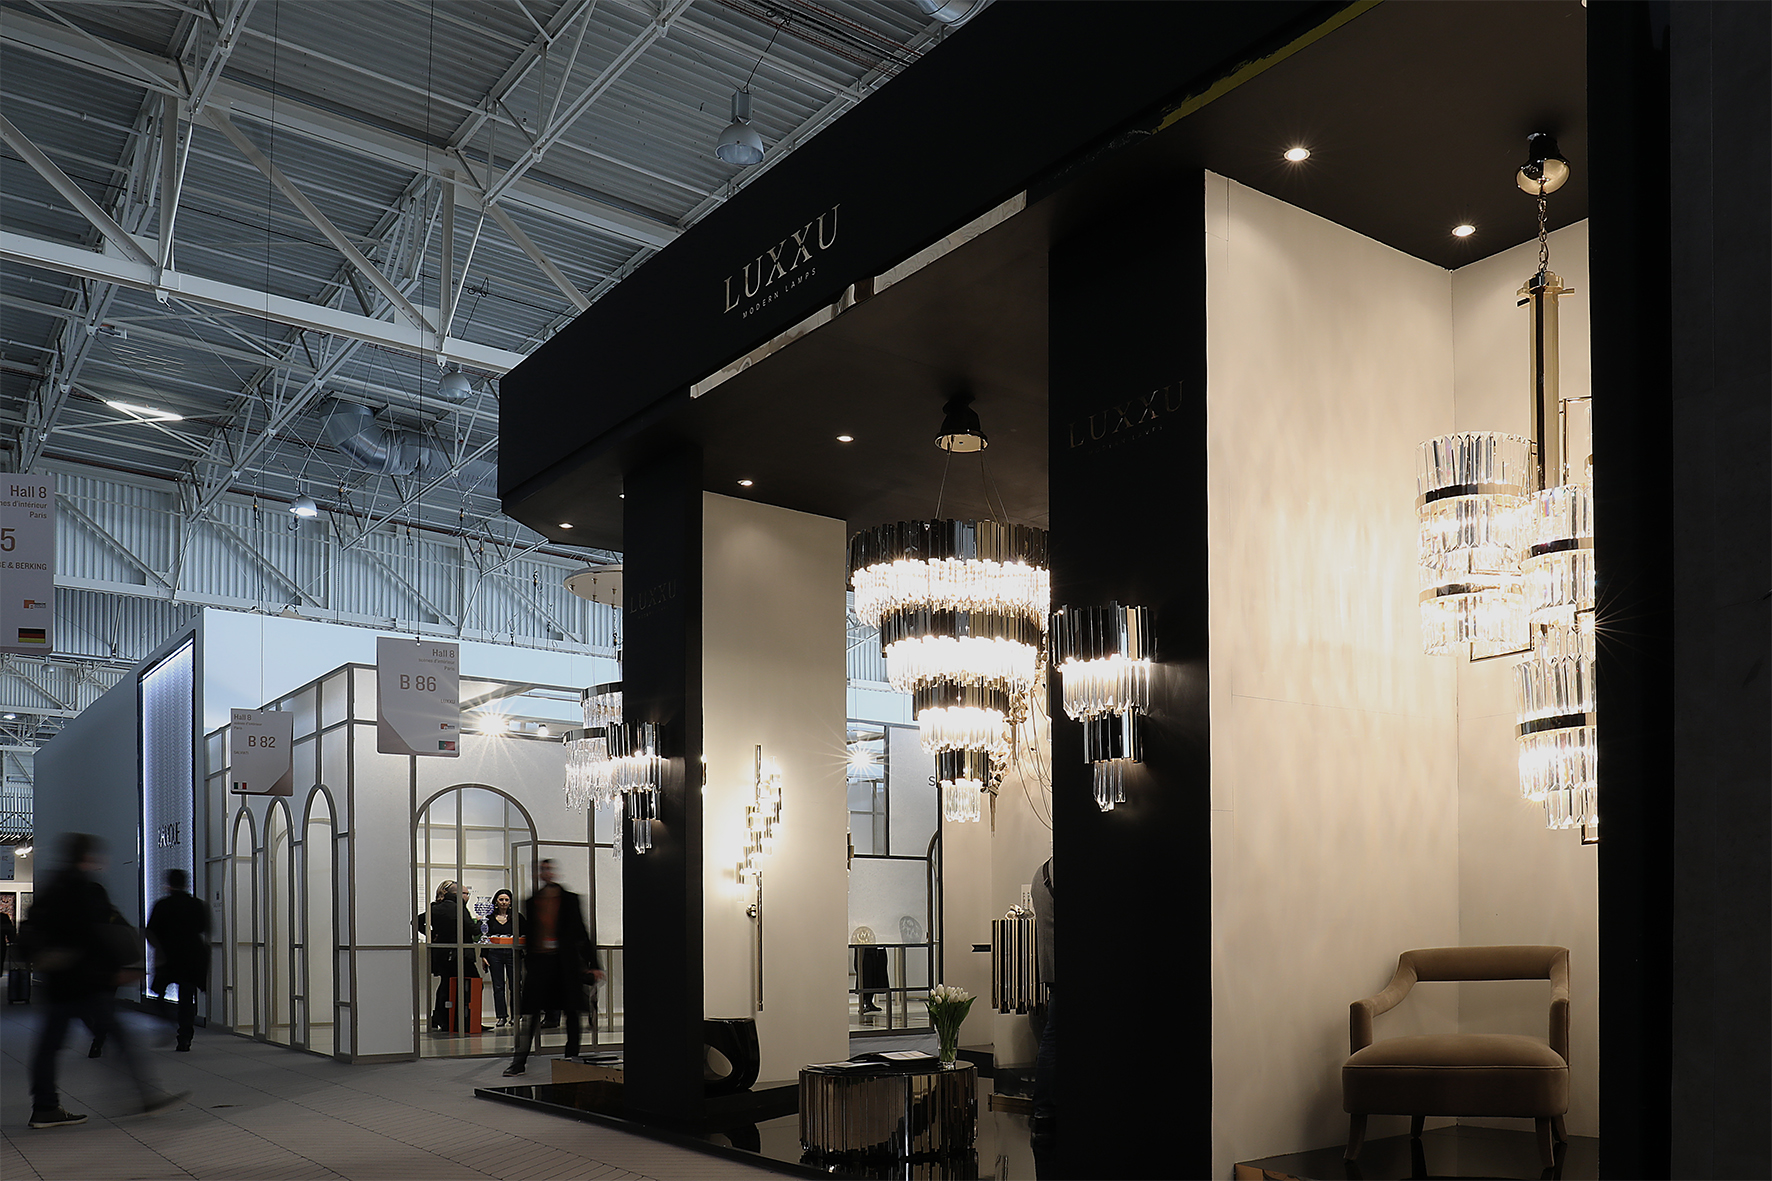 What to Expect From LUXXU at Maison et Objet 2017 EquipHotel Paris What You Need To Know About EquipHotel Paris What to Expect From LUXXU at Maison et Objet 2017 5 EquipHotel Paris What You Need To Know About EquipHotel Paris What to Expect From LUXXU at Maison et Objet 2017 5